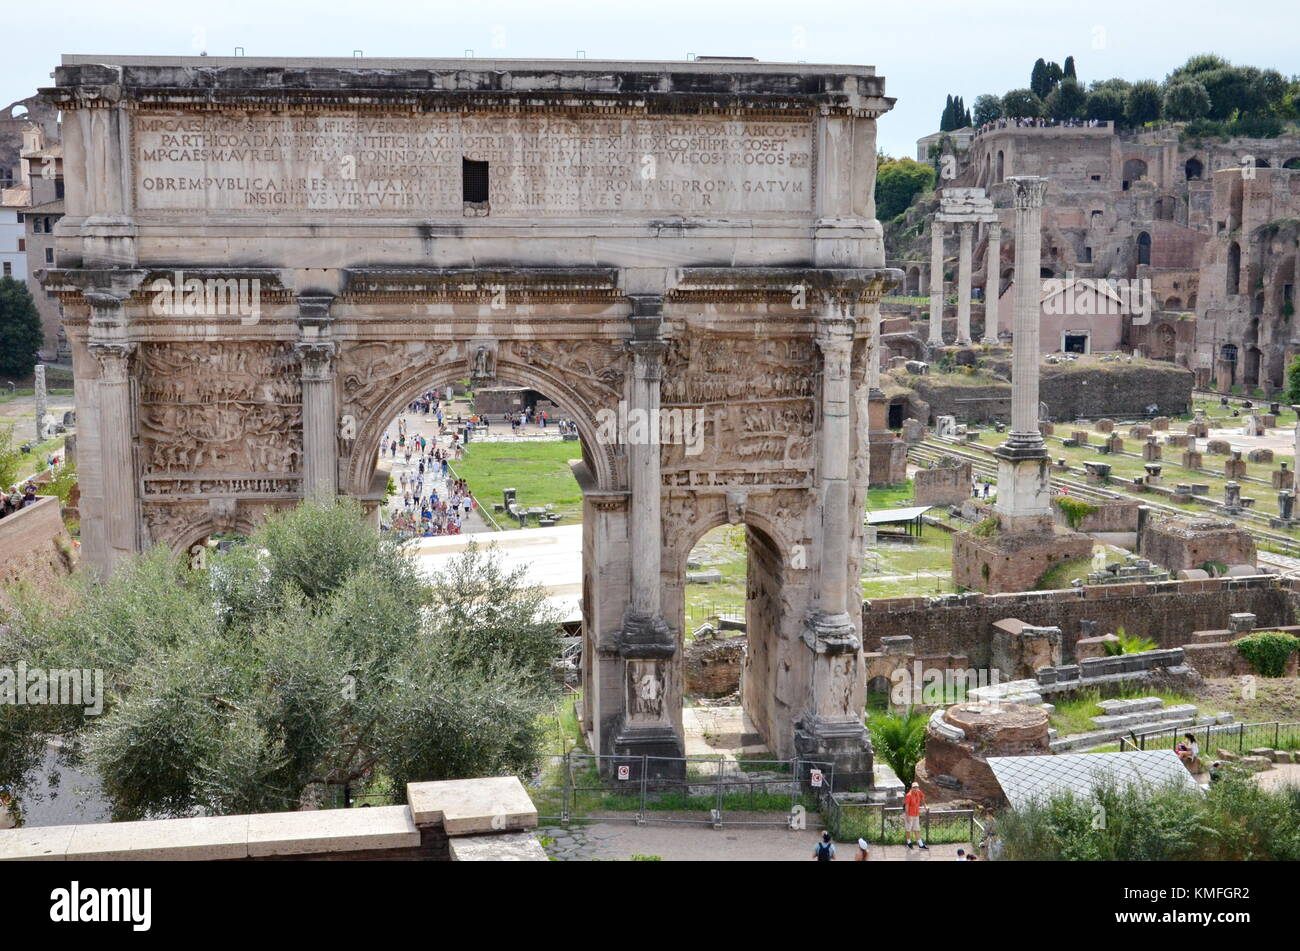 Rome, Italy - September 9, 2015: Tourists visit the Arch of Septimius Severus located in the Roman Forum in Rome, - Stock Image